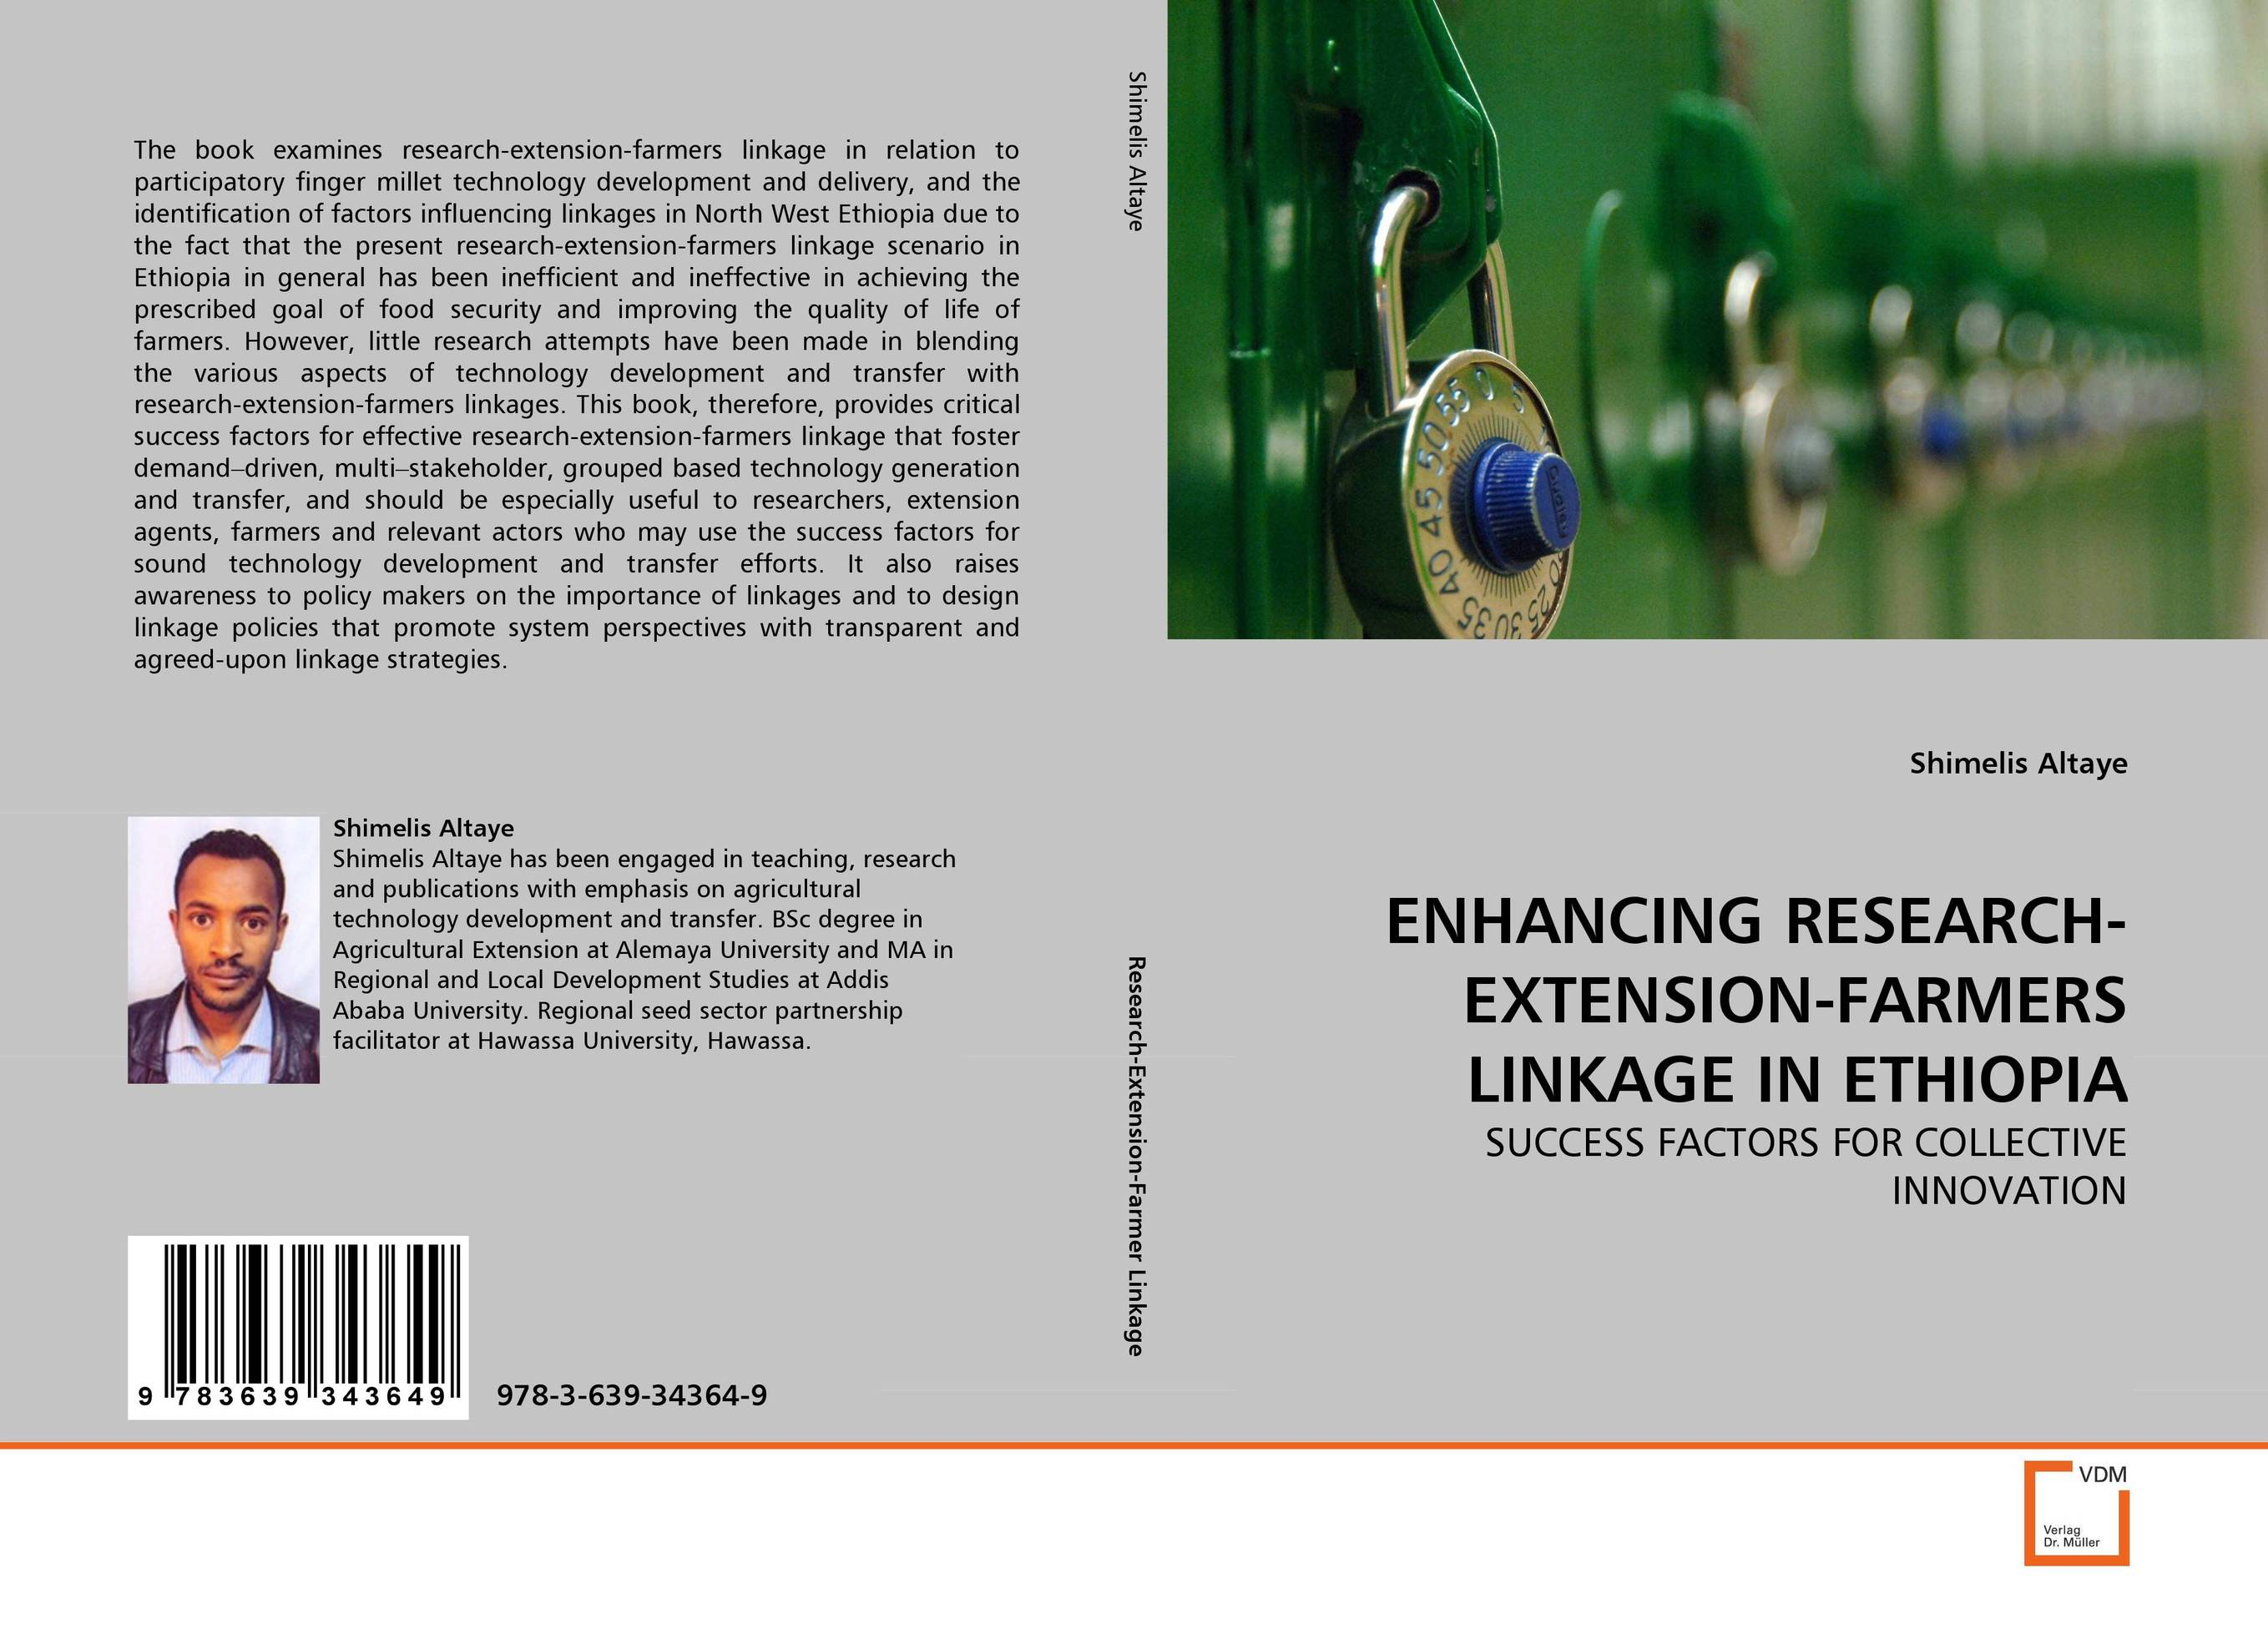 ENHANCING RESEARCH-EXTENSION-FARMERS LINKAGE IN ETHIOPIA буддийский сувенир sheng good research and development ssyf a19 10